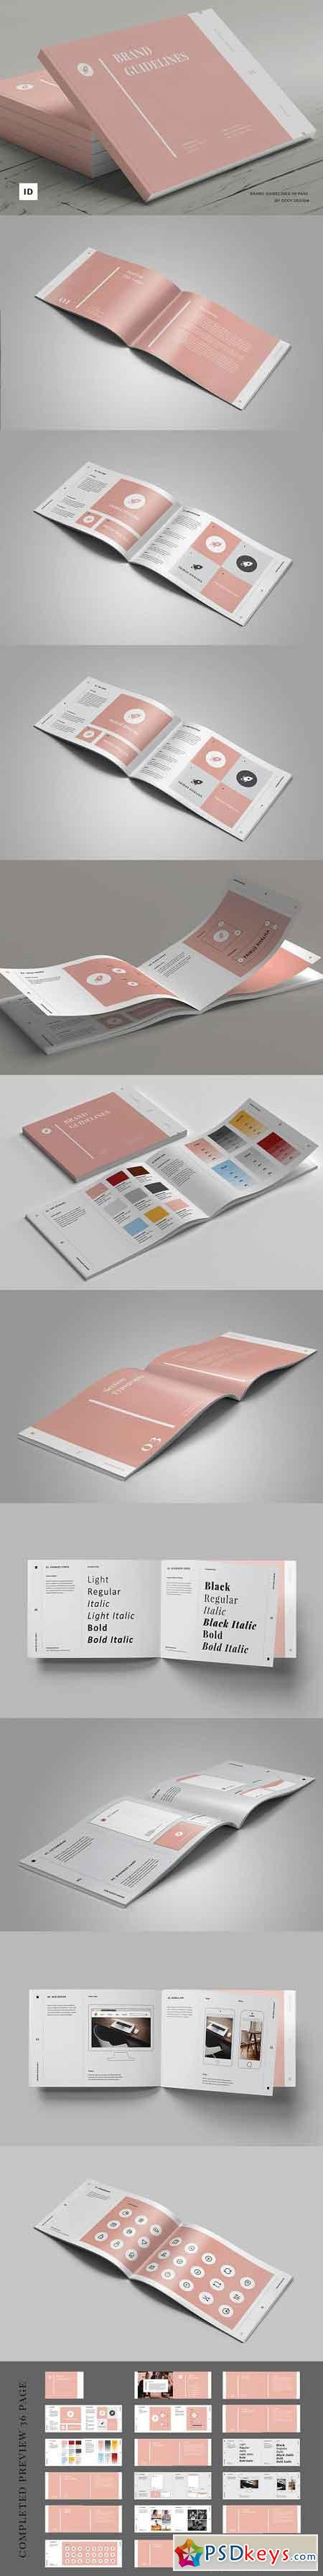 Brand Guidelines 2968685